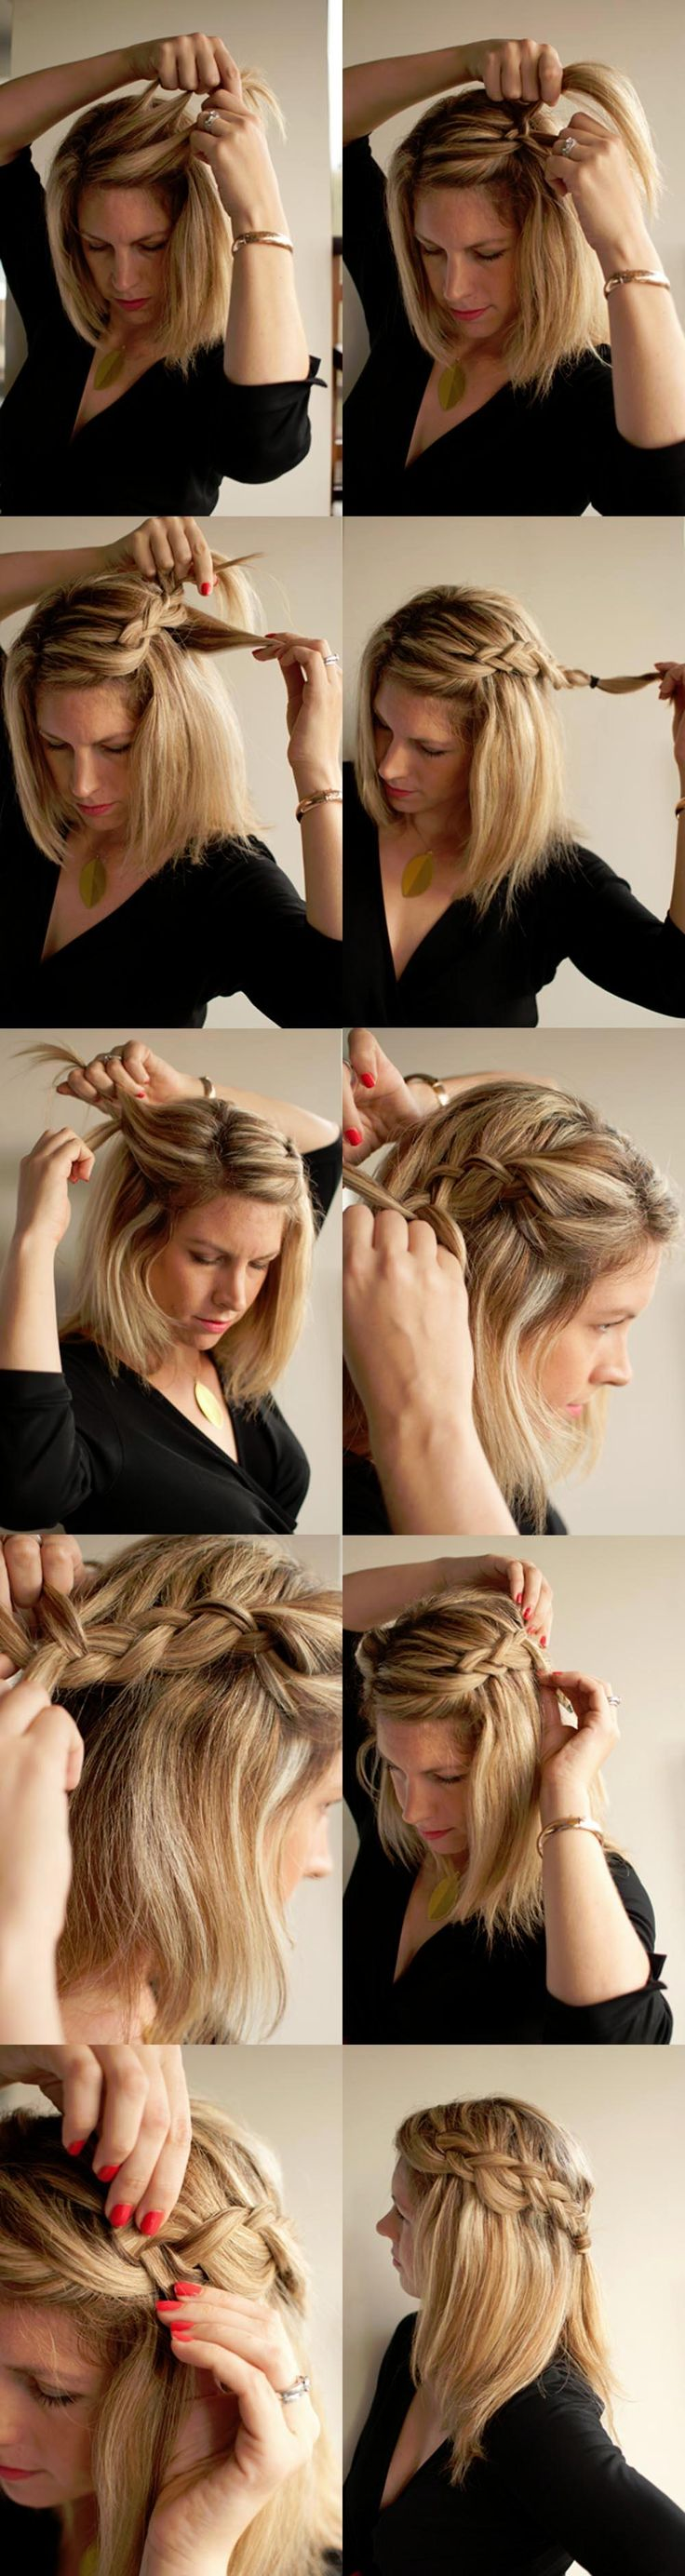 94 best Hair images on Pinterest